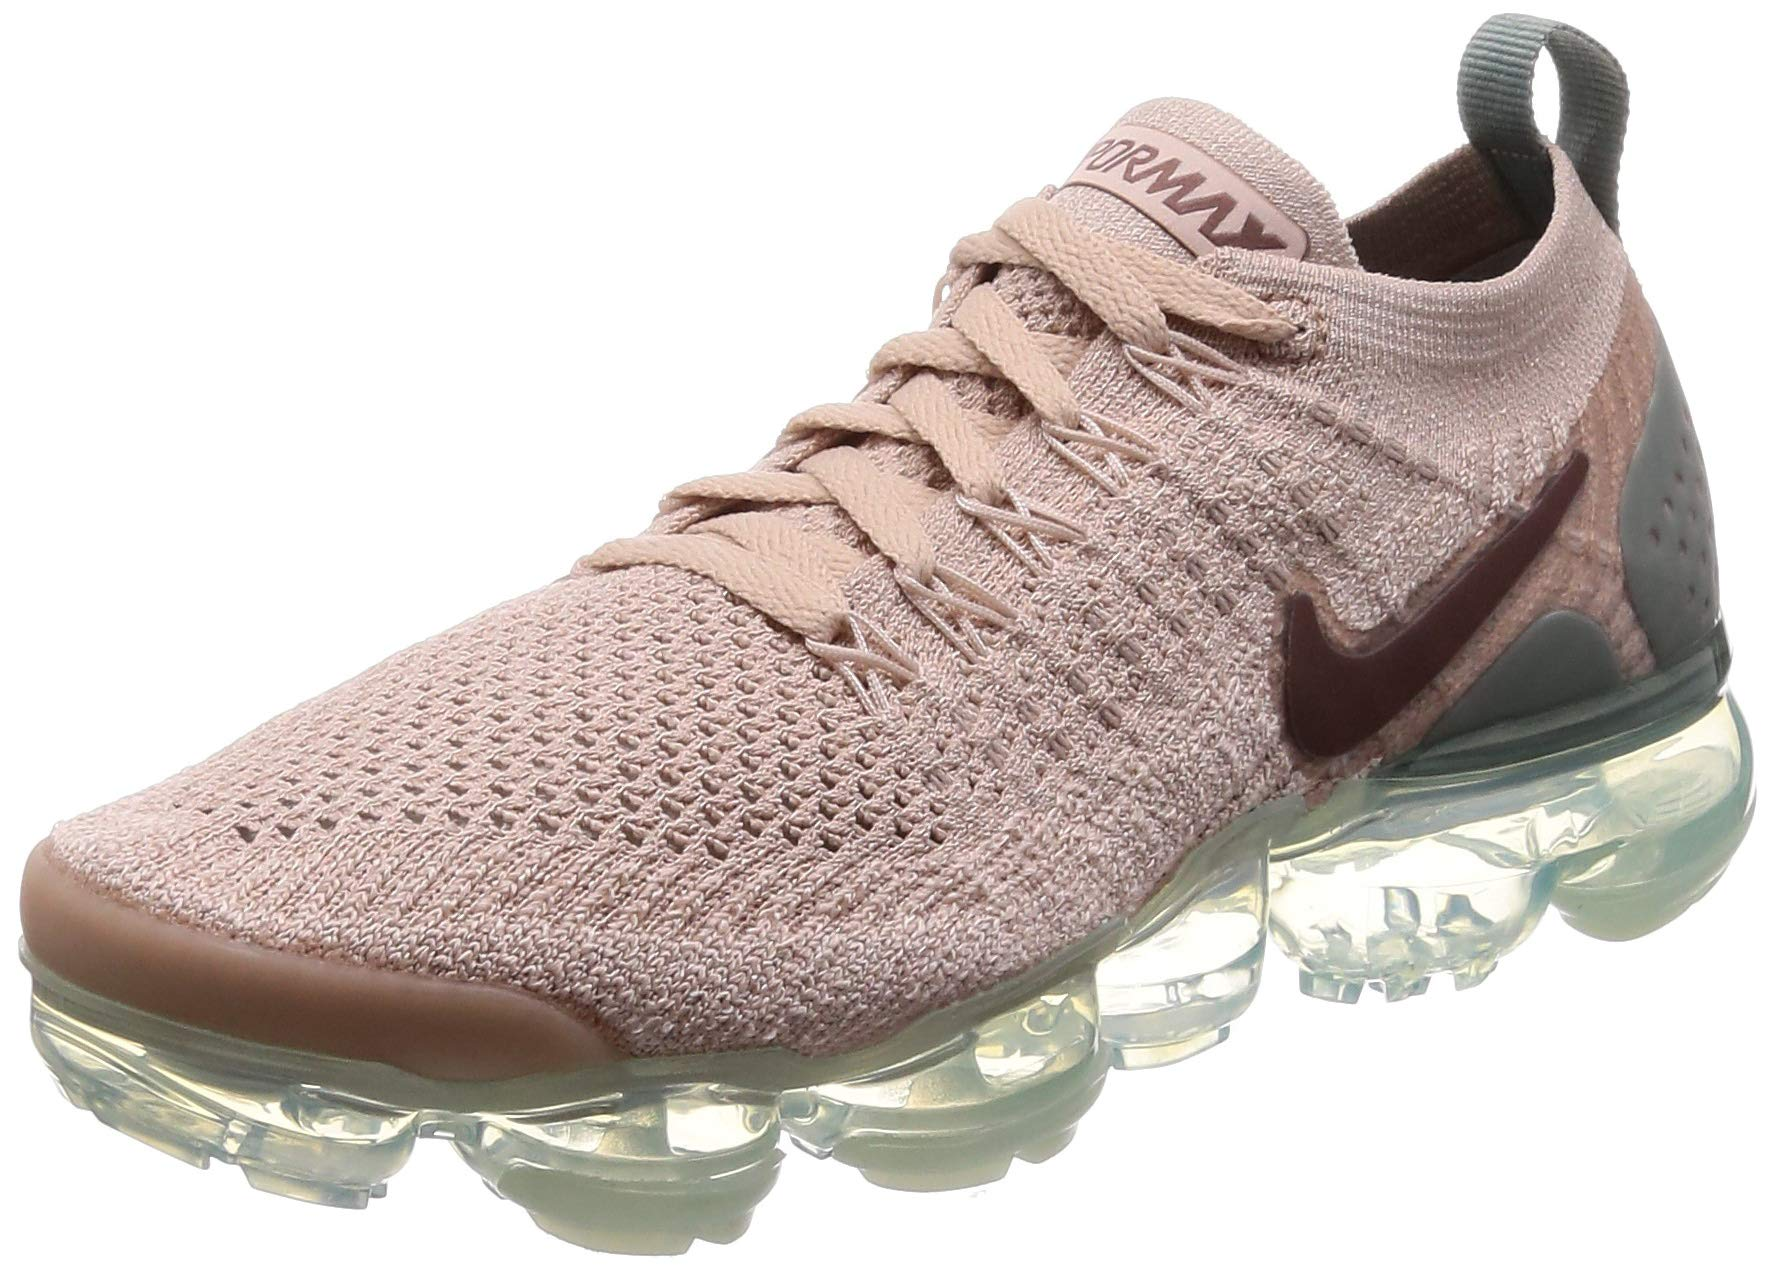 reputable site b1fe9 1b990 Nike Women's W Air Vapormax Flyknit 2 Fitness Shoes